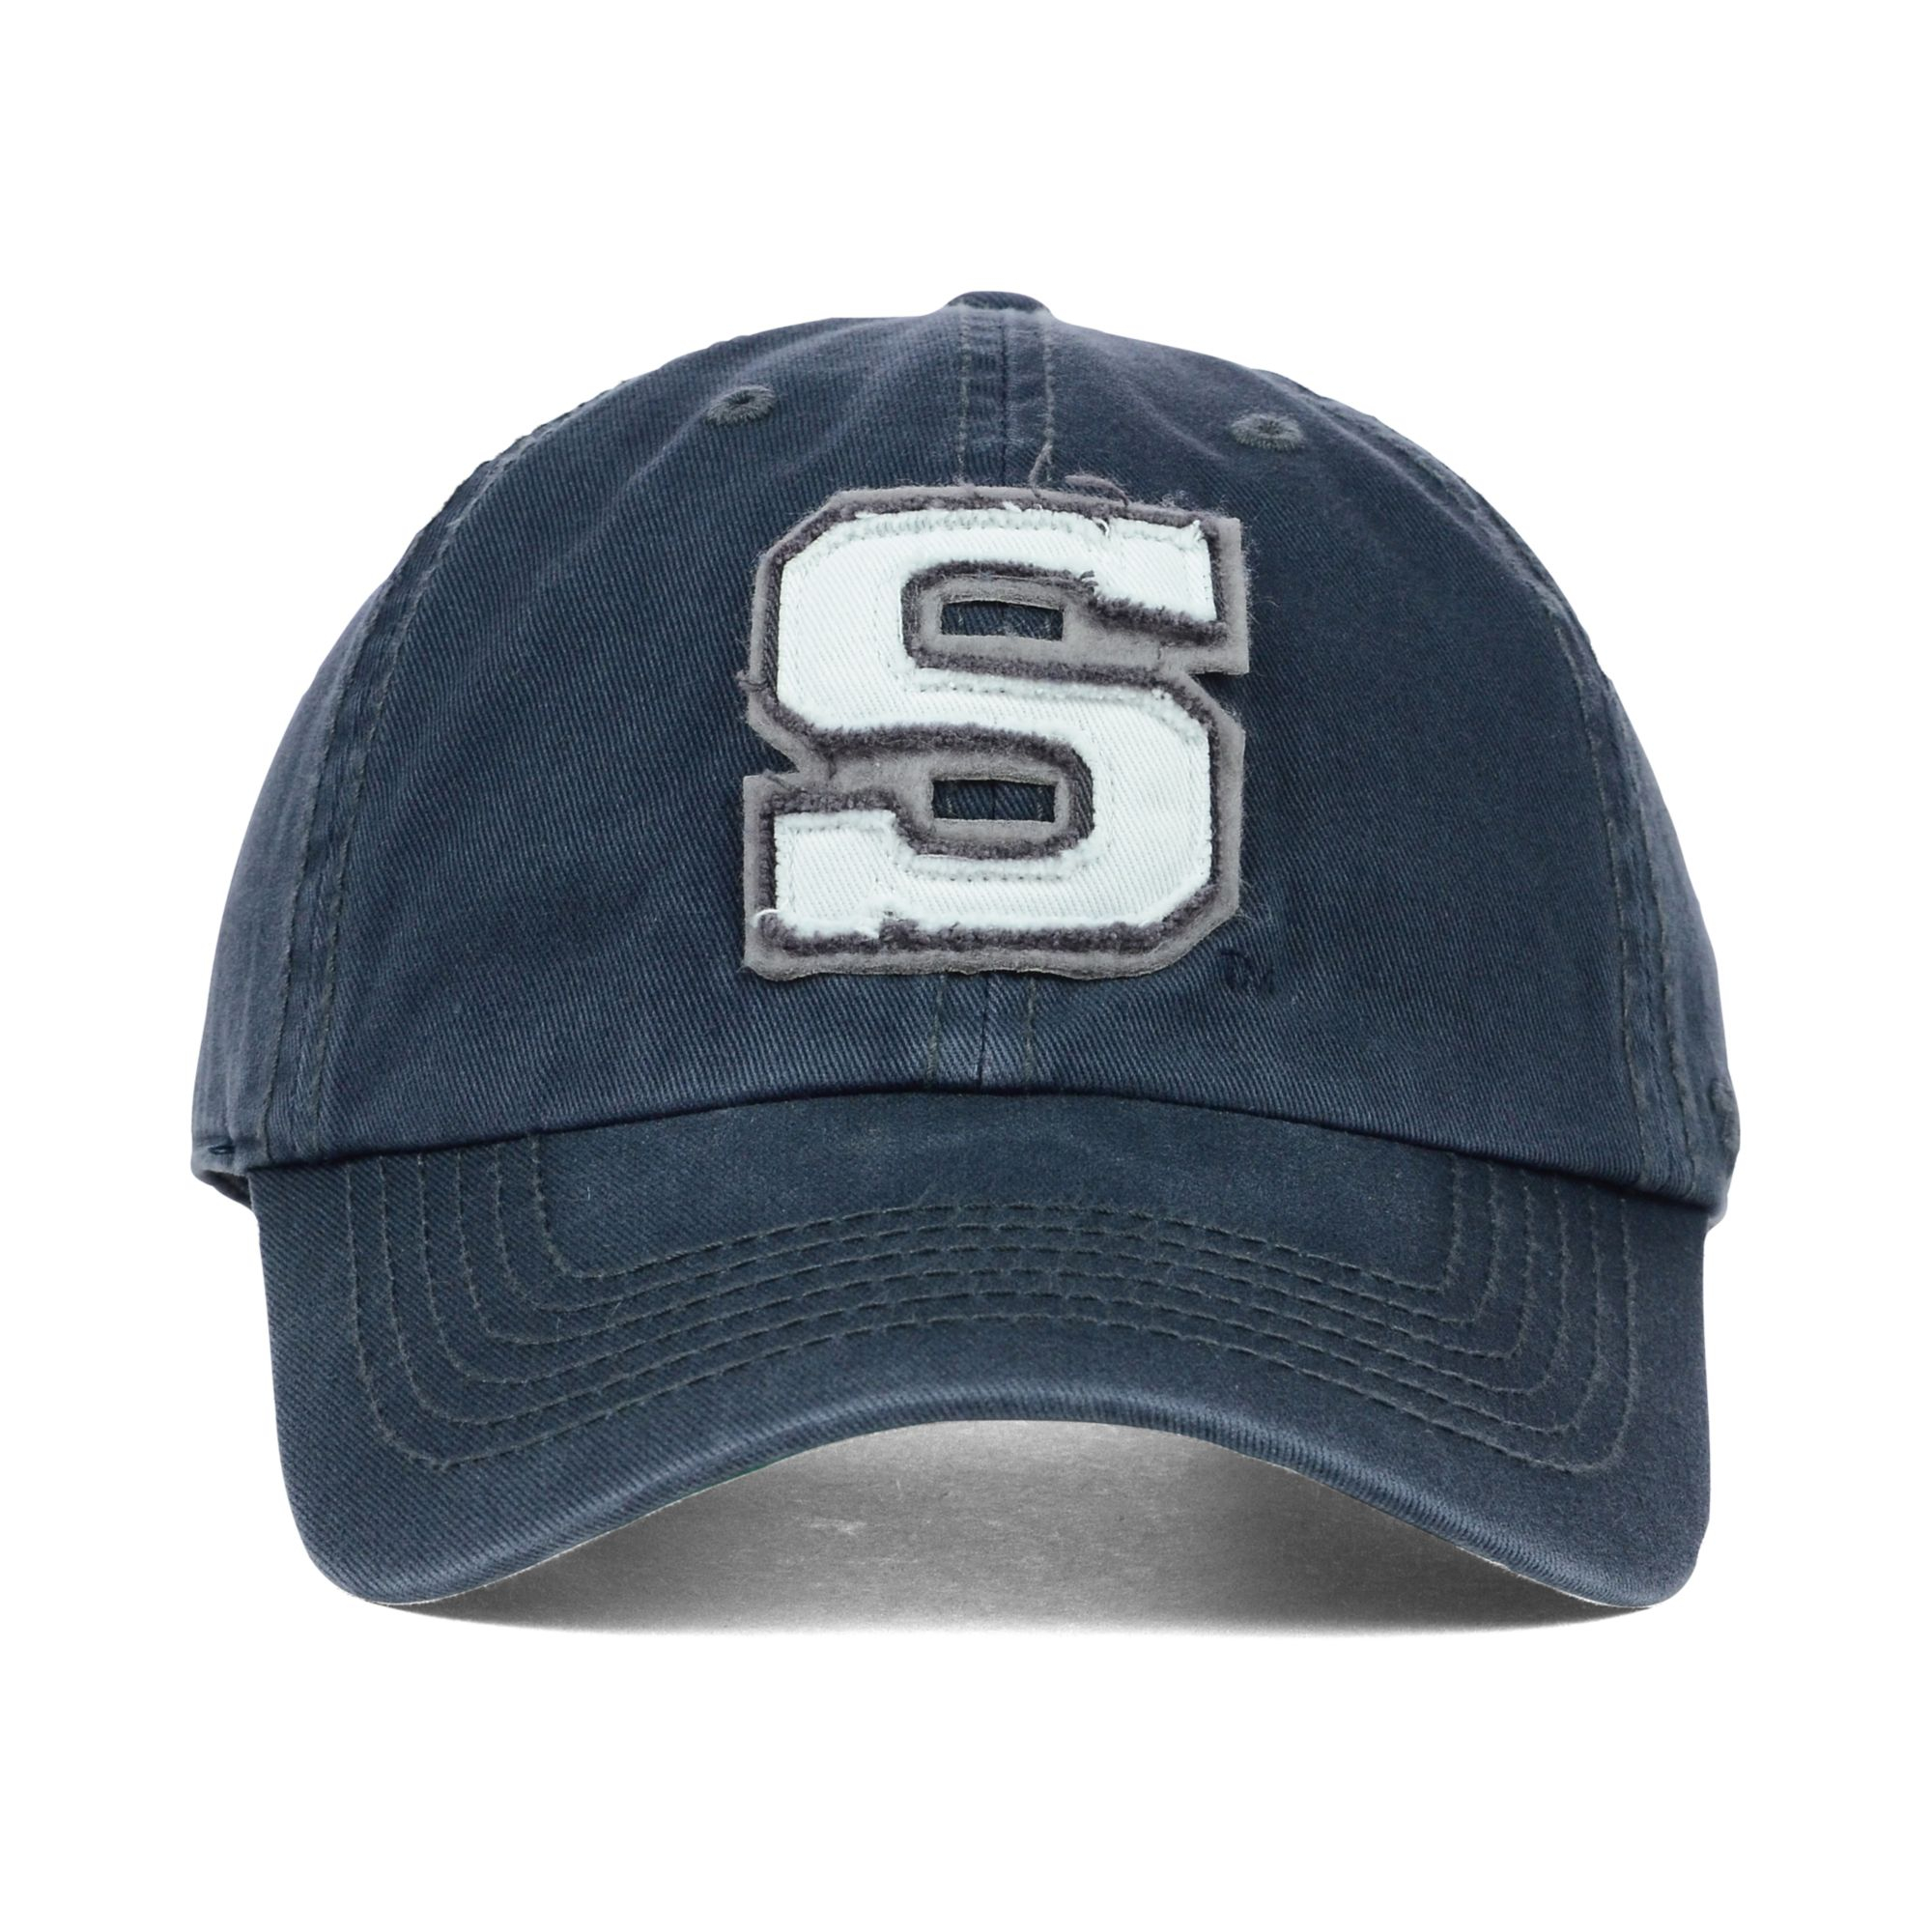 d7b43160ed0e5 Lyst - 47 Brand Penn State Nittany Lions Gibraltar Clean Up Cap in ...